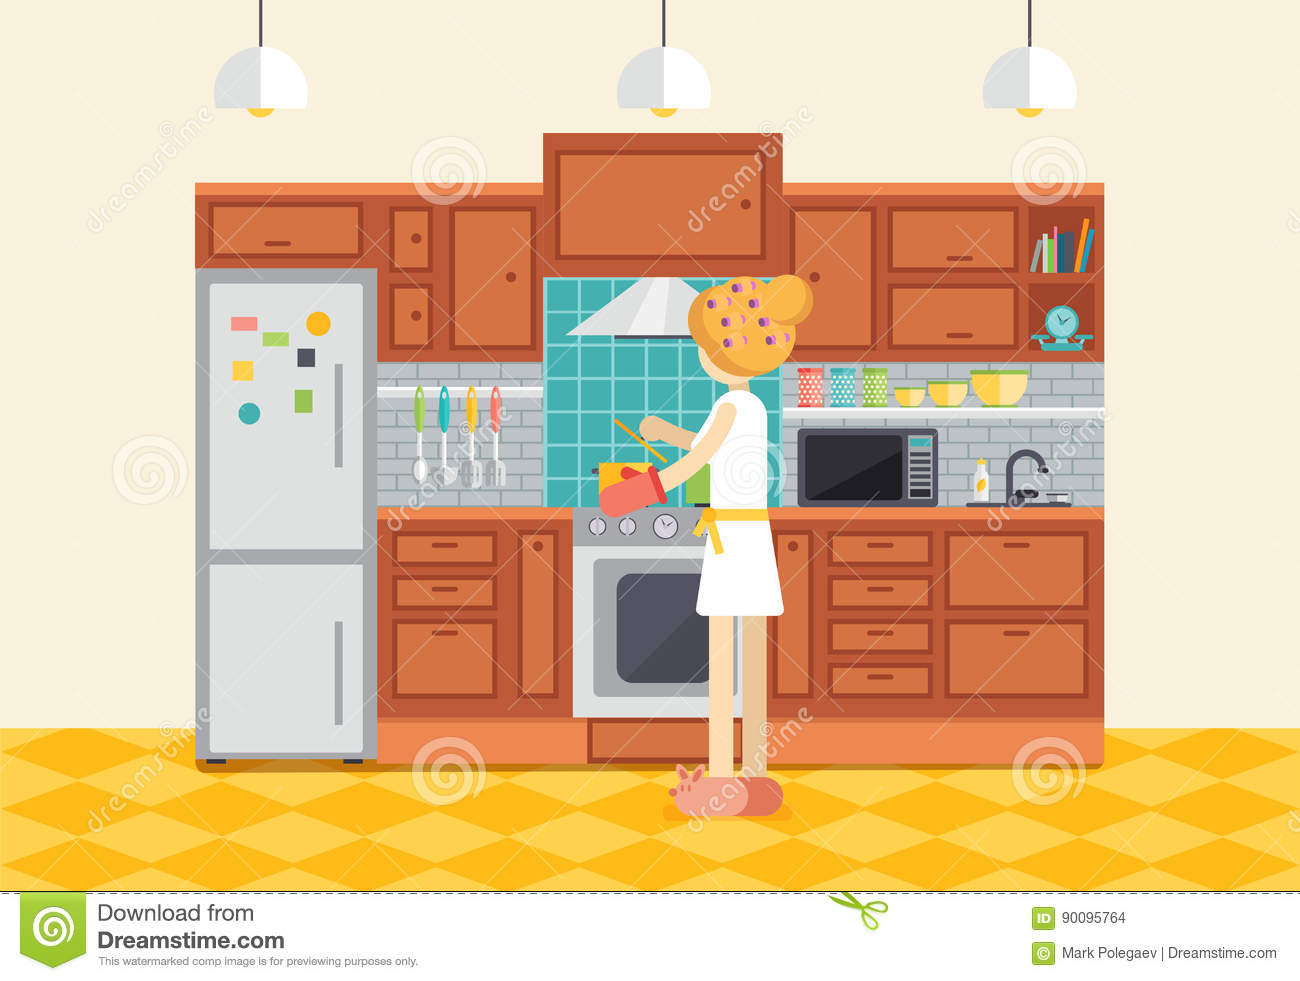 Cartoon kitchen counter gallery - Cartoon Kitchen Counter Free Countertop Clipart Young Woman Or Girl Cooking Dinner In Kitchen Housewife